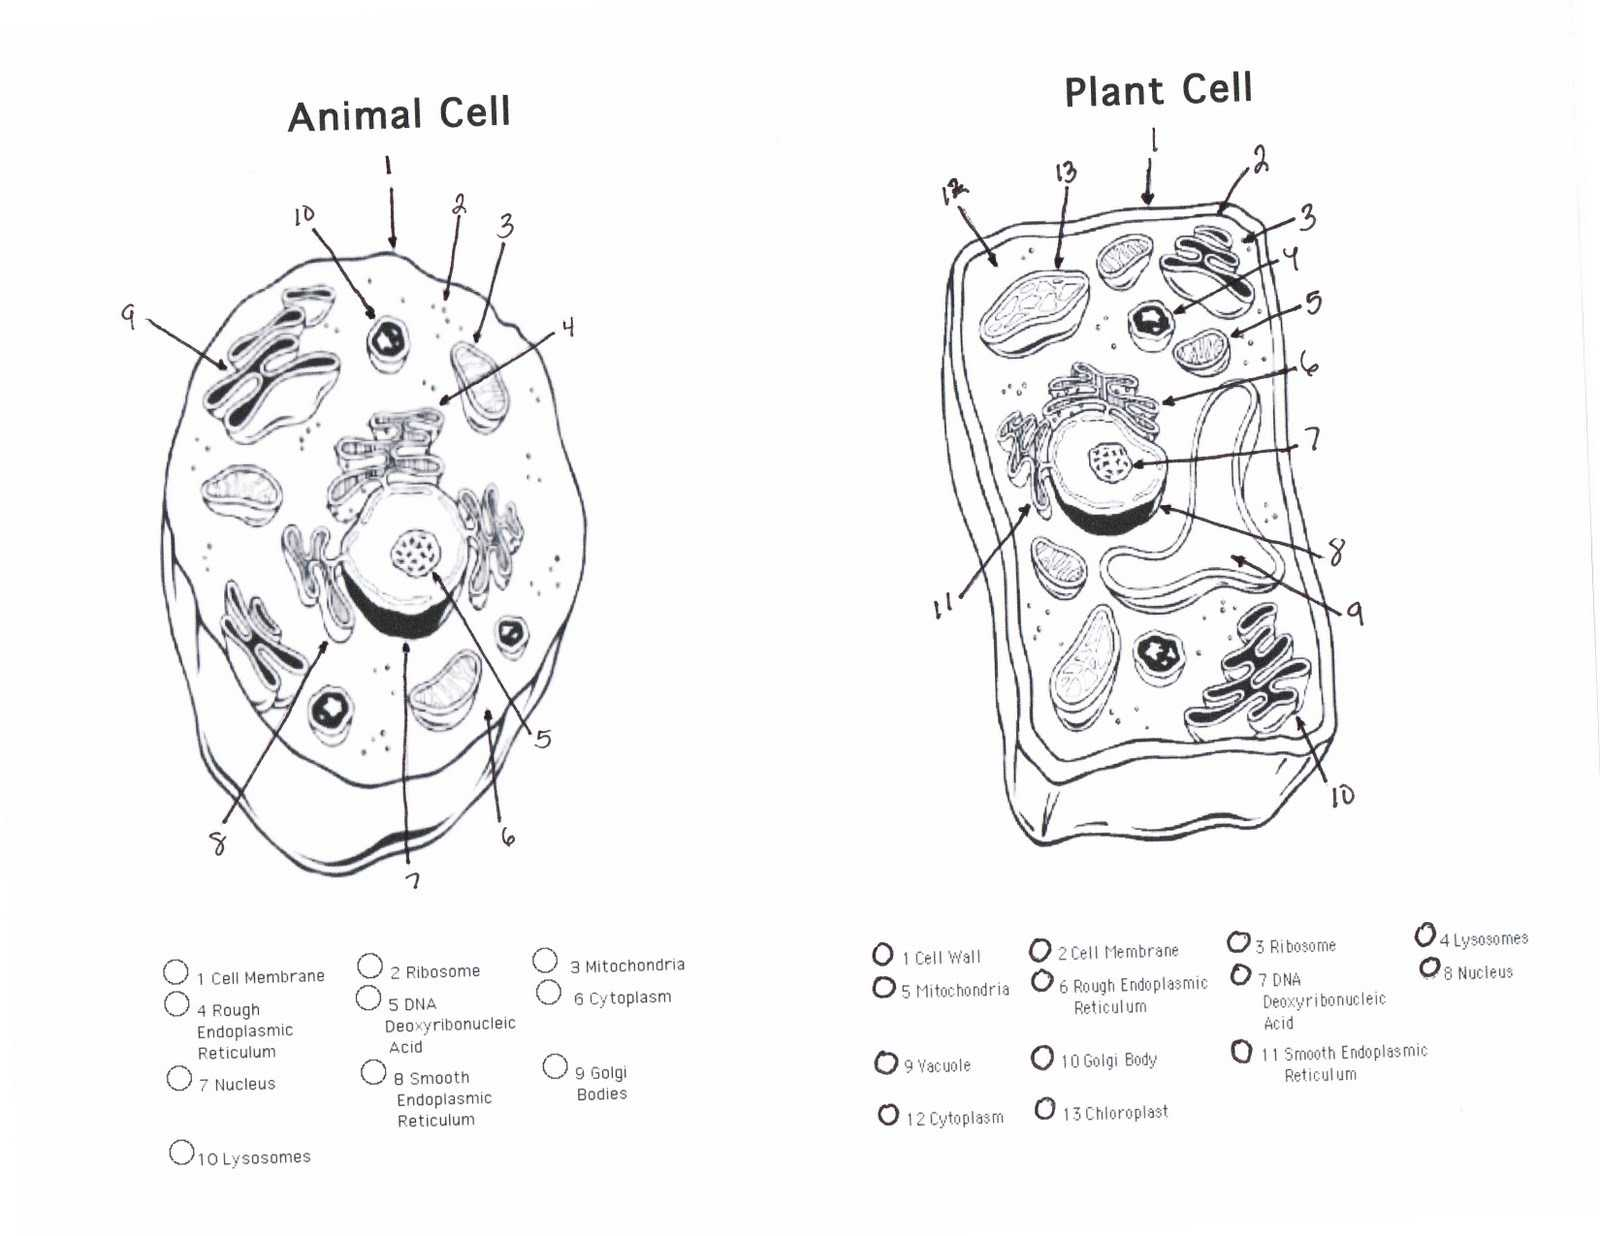 Cell organelles Worksheet Answer Key together with Plant Cell Coloring Sheet to Print